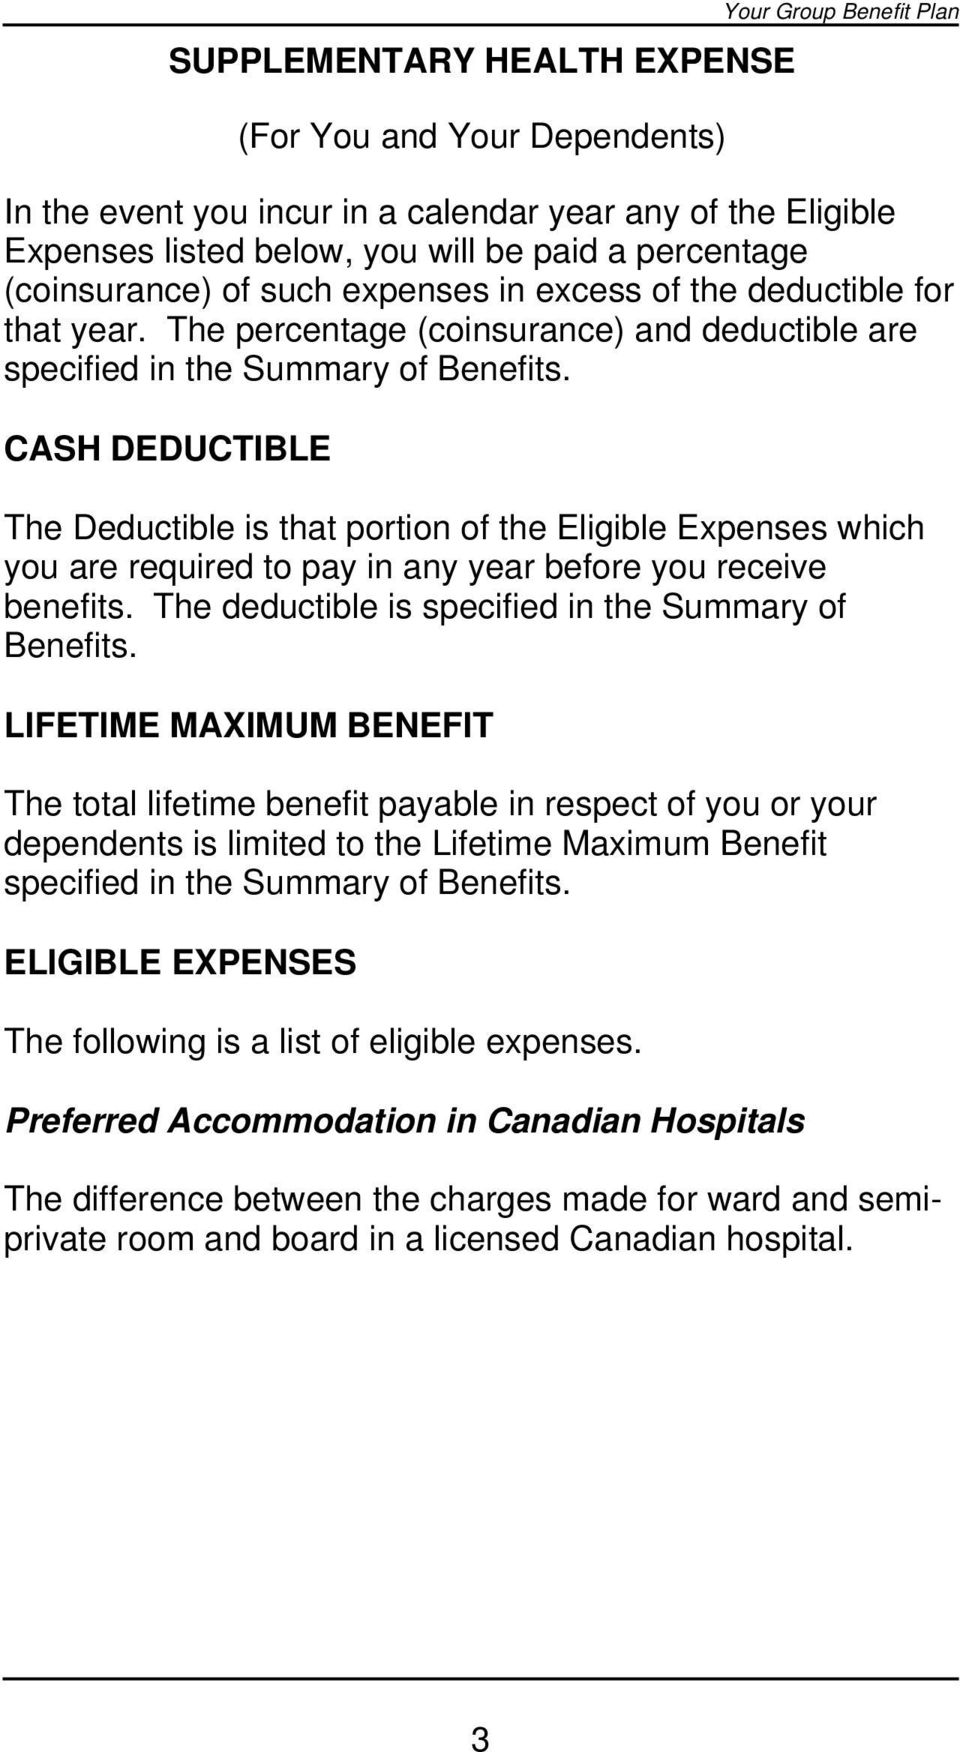 CASH DEDUCTIBLE The Deductible is that portion of the Eligible Expenses which you are required to pay in any year before you receive benefits. The deductible is specified in the Summary of Benefits.